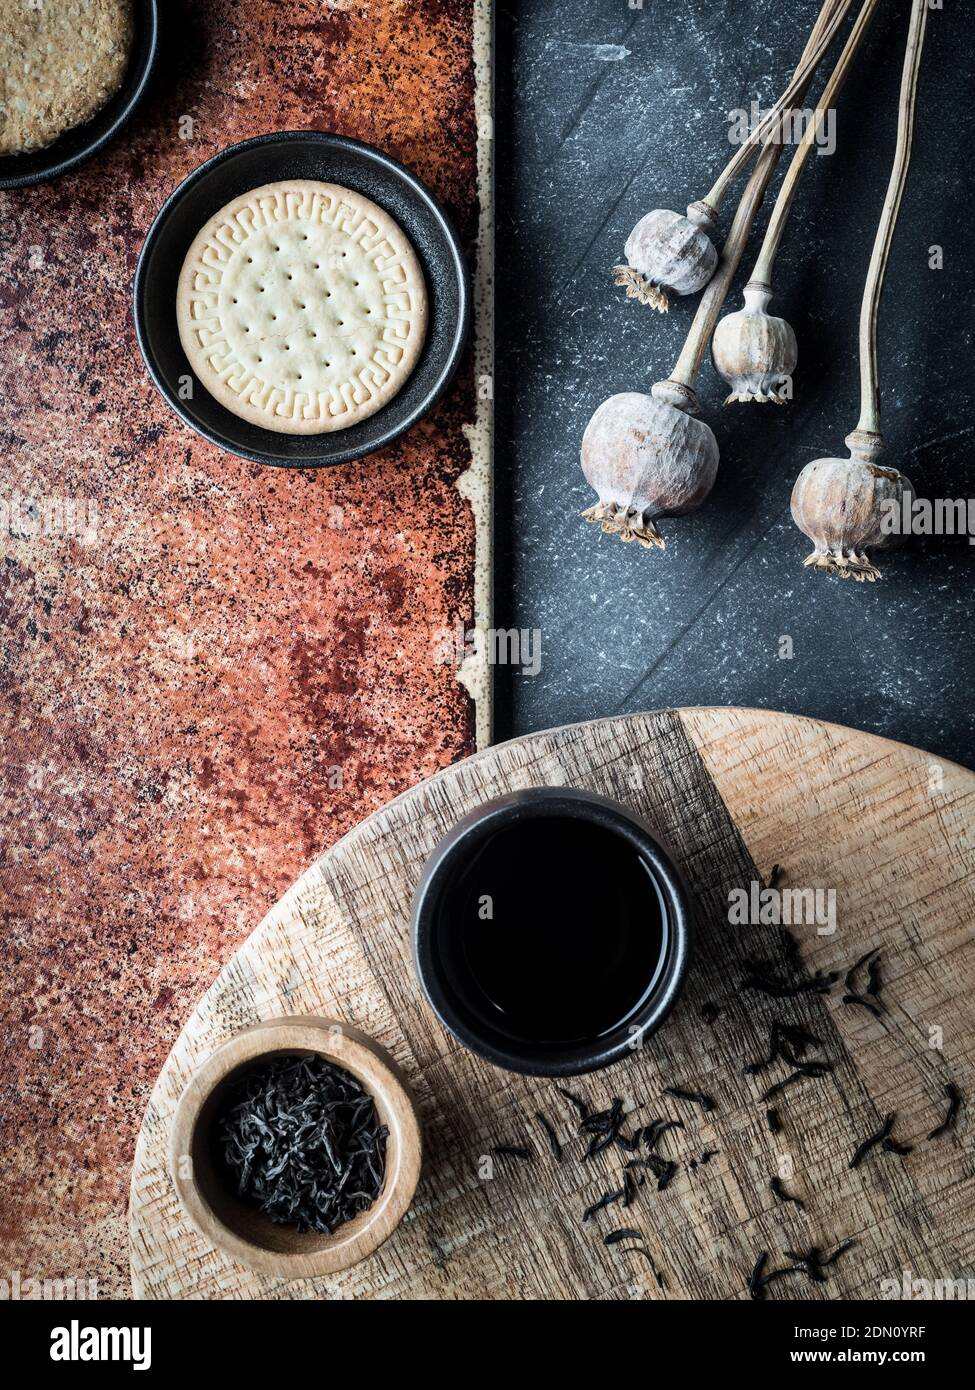 Different types of cookies and cup of cofee on grey and teracota background. Overhead shot. Foto de stock